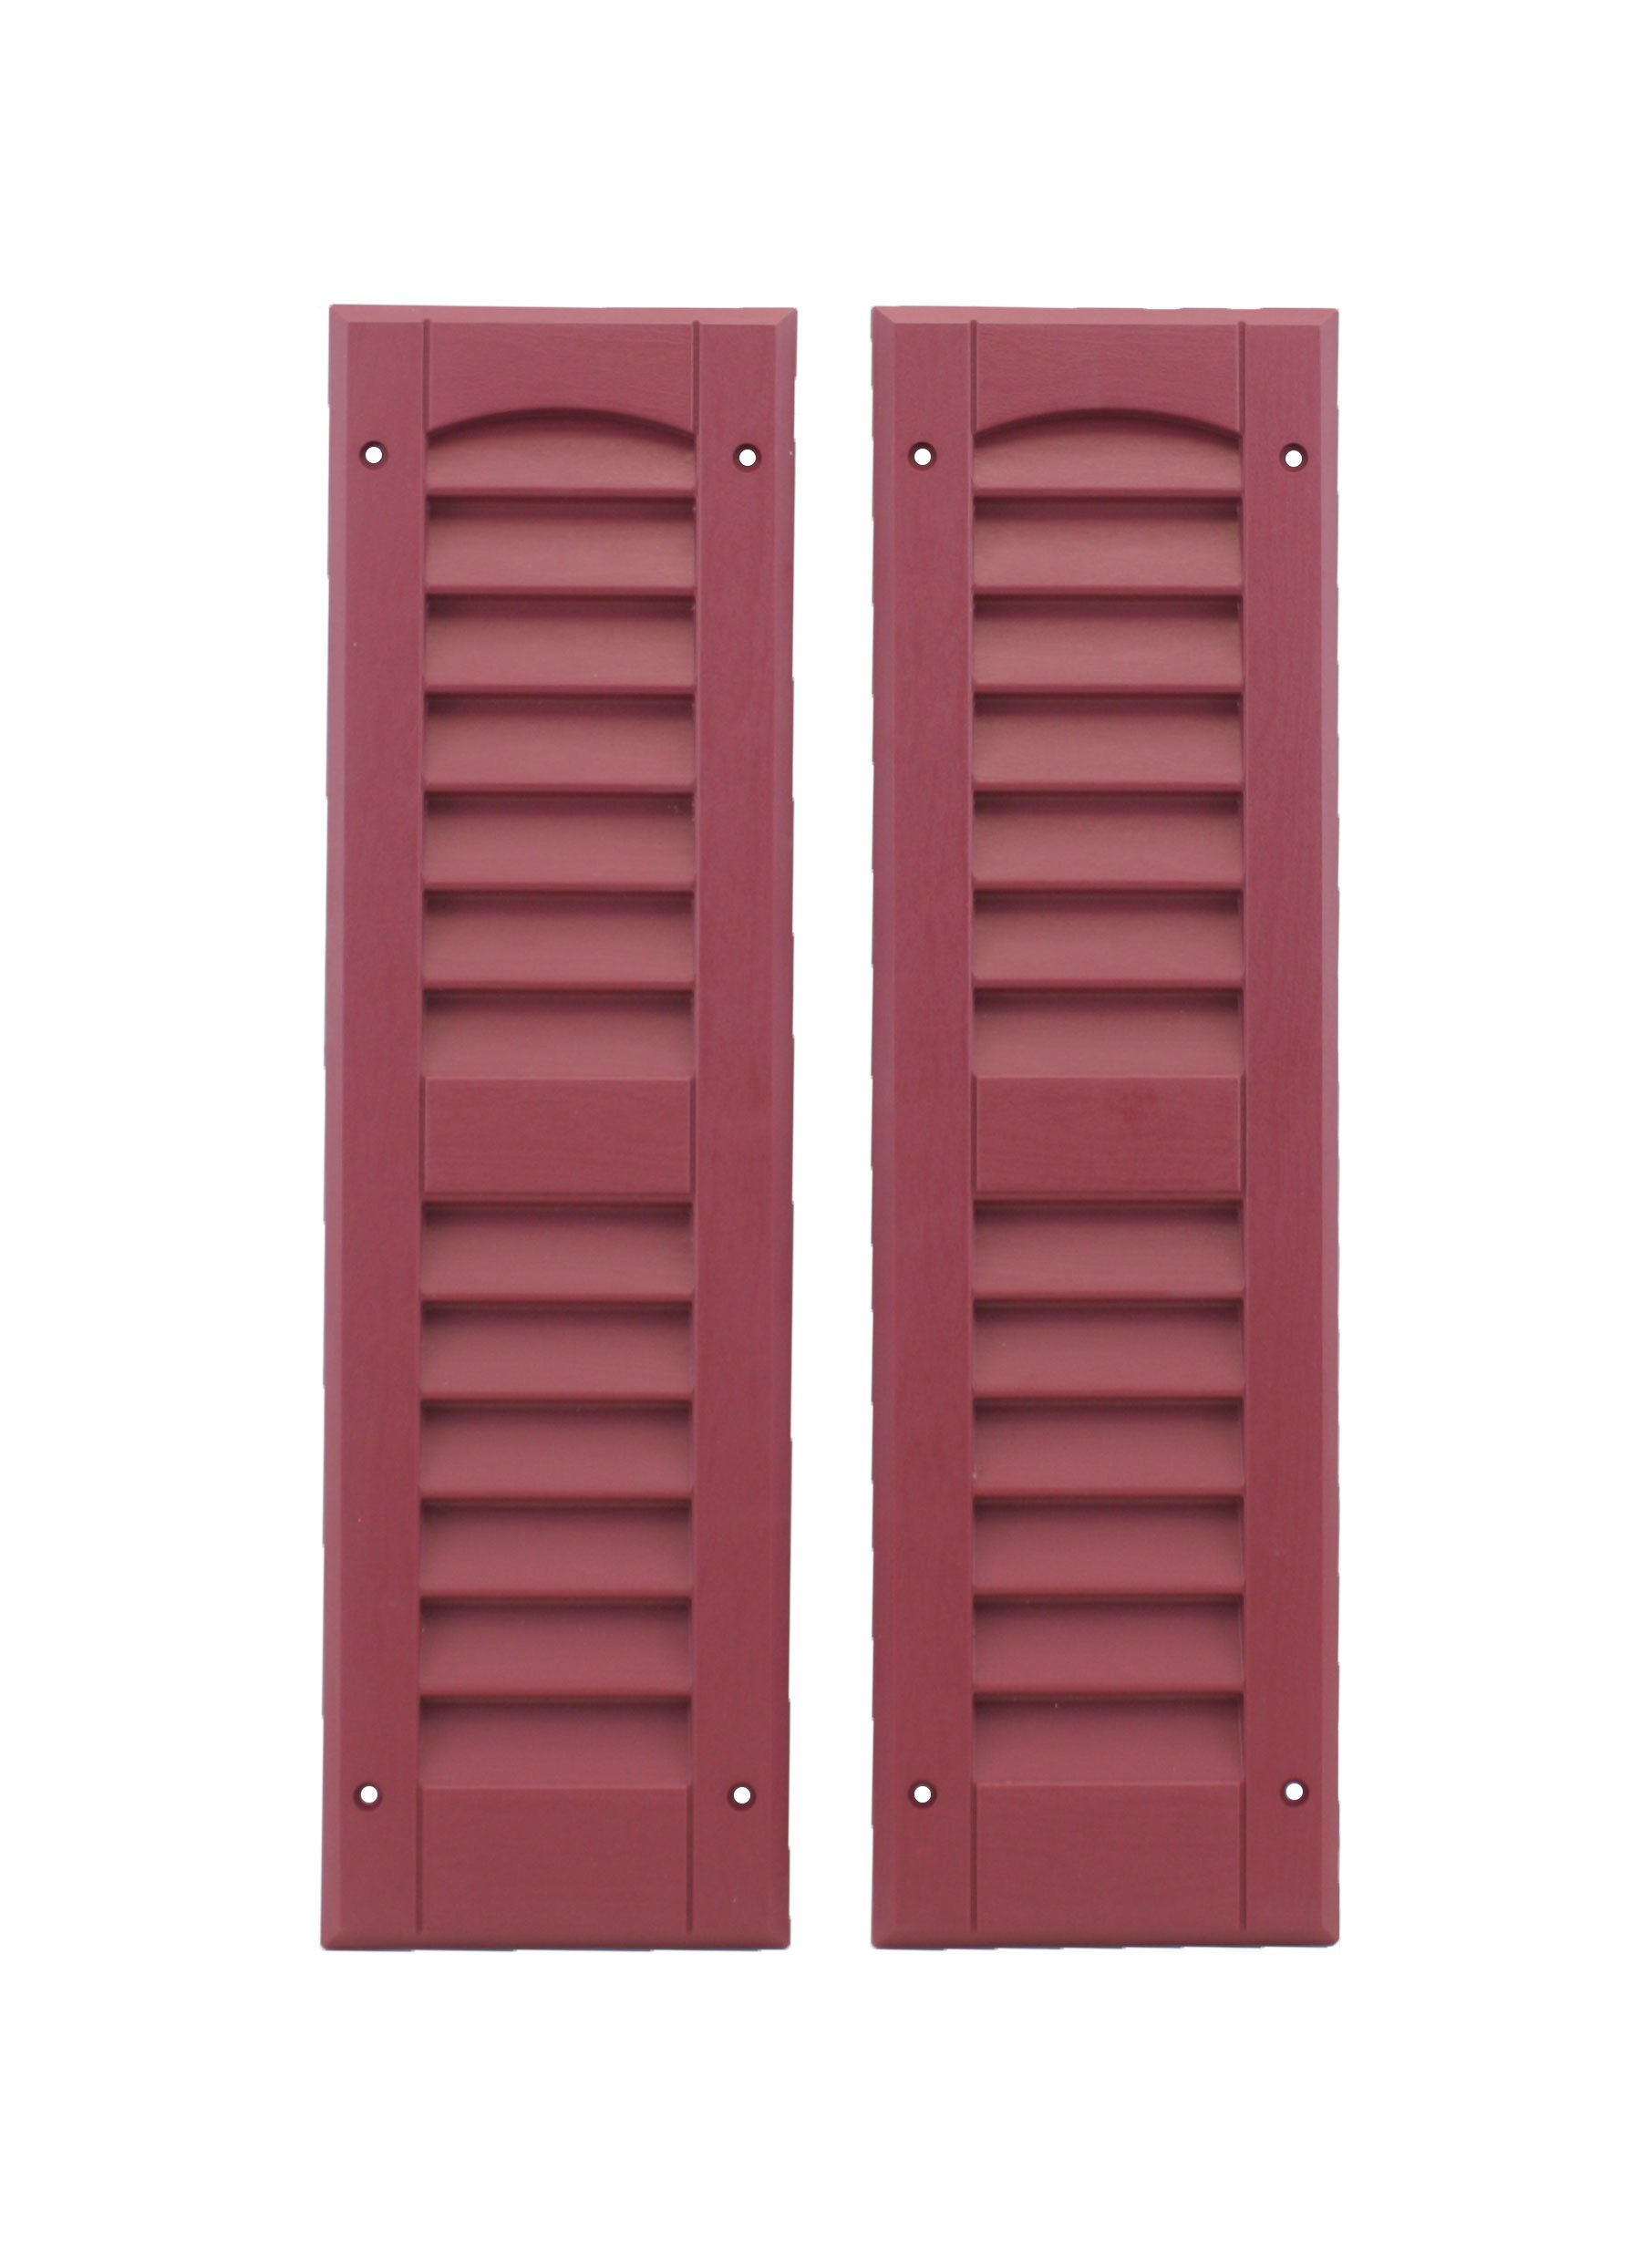 Louvered Shed Shutter or Playhouse Shutters Maroon 6'' X 21'', 1 Pair